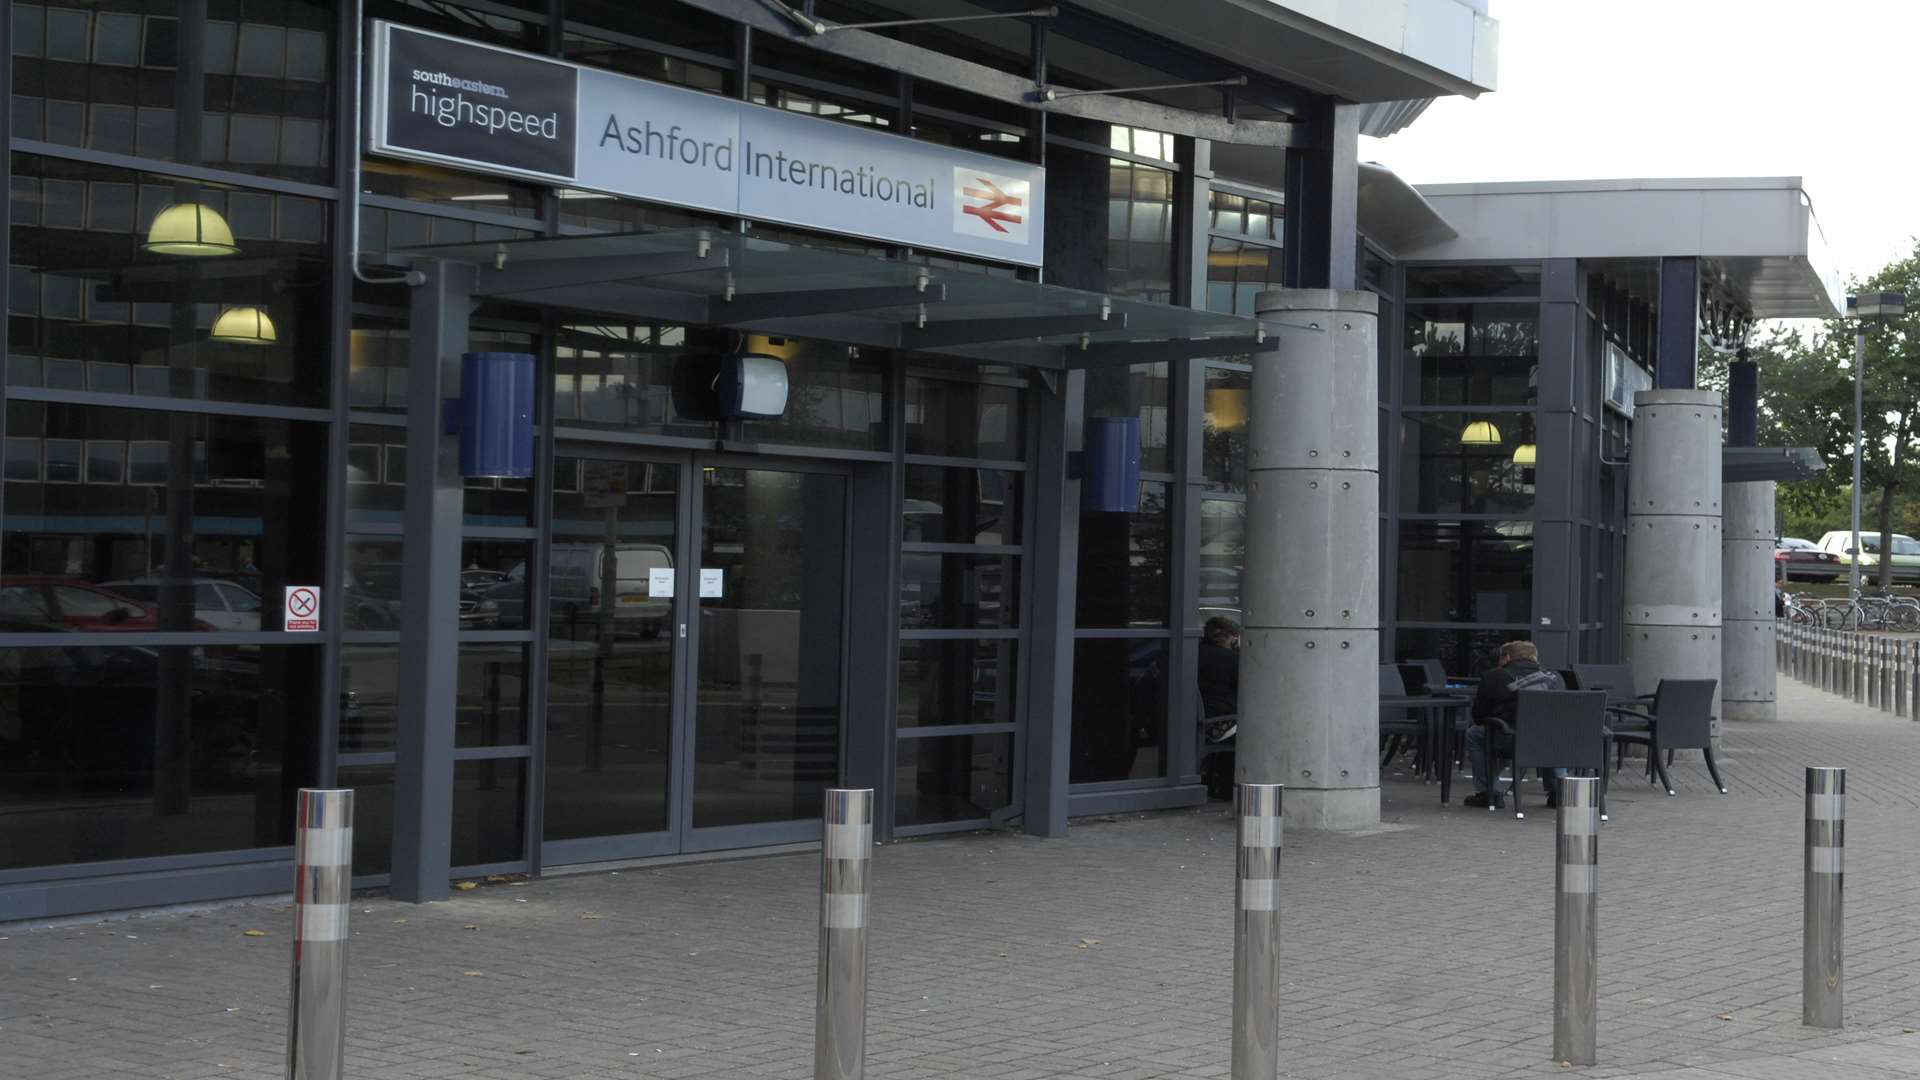 Ashford International Station